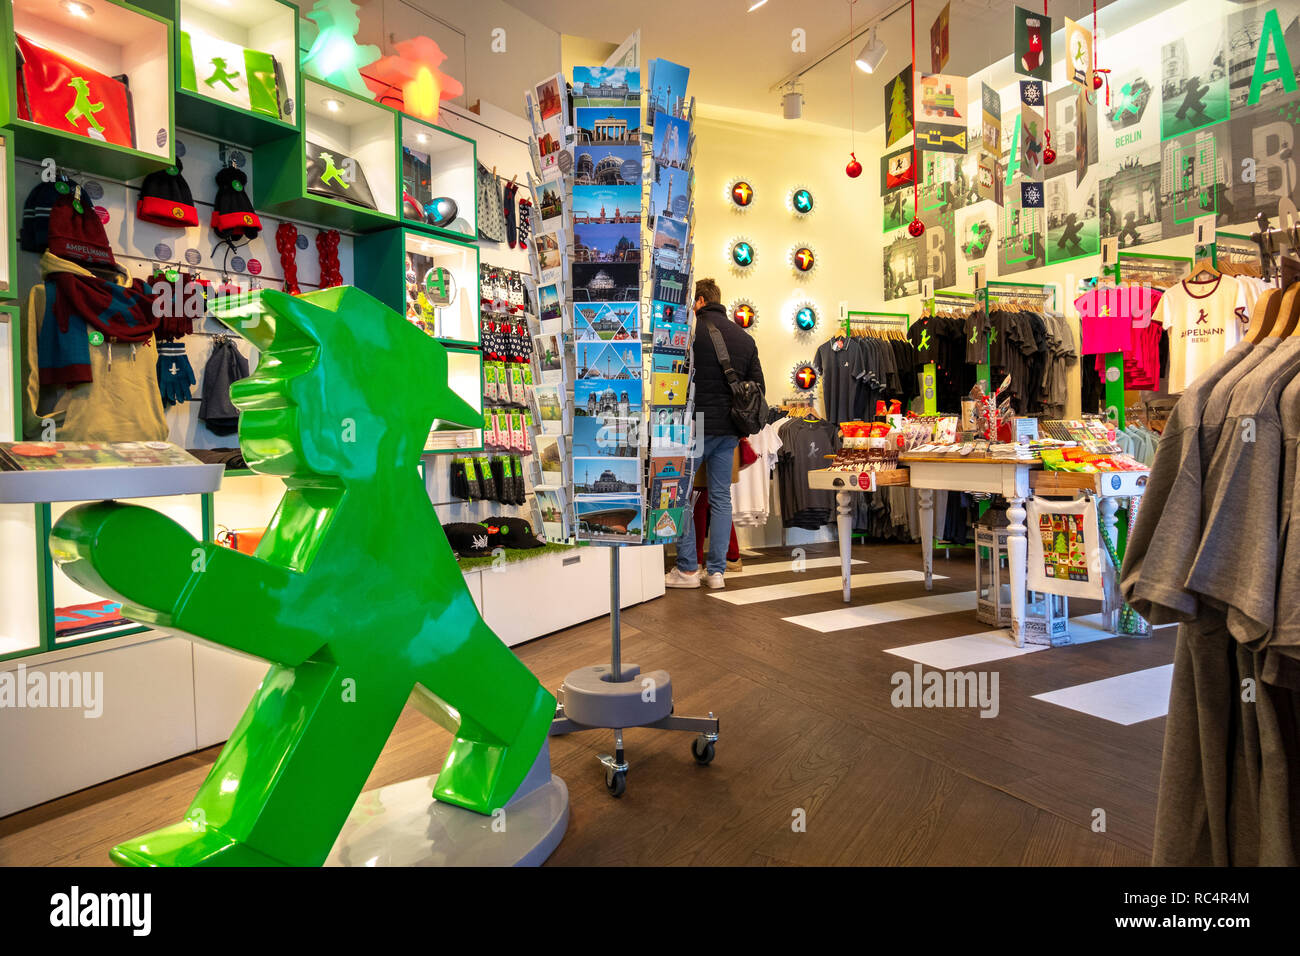 https://c7.alamy.com/comp/RC4R4M/the-first-and-original-ampelmnnchen-ampelmann-galerie-shop-in-the-hackesche-hfe-hackescher-markt-shopping-courtyards-berlin-germany-RC4R4M.jpg